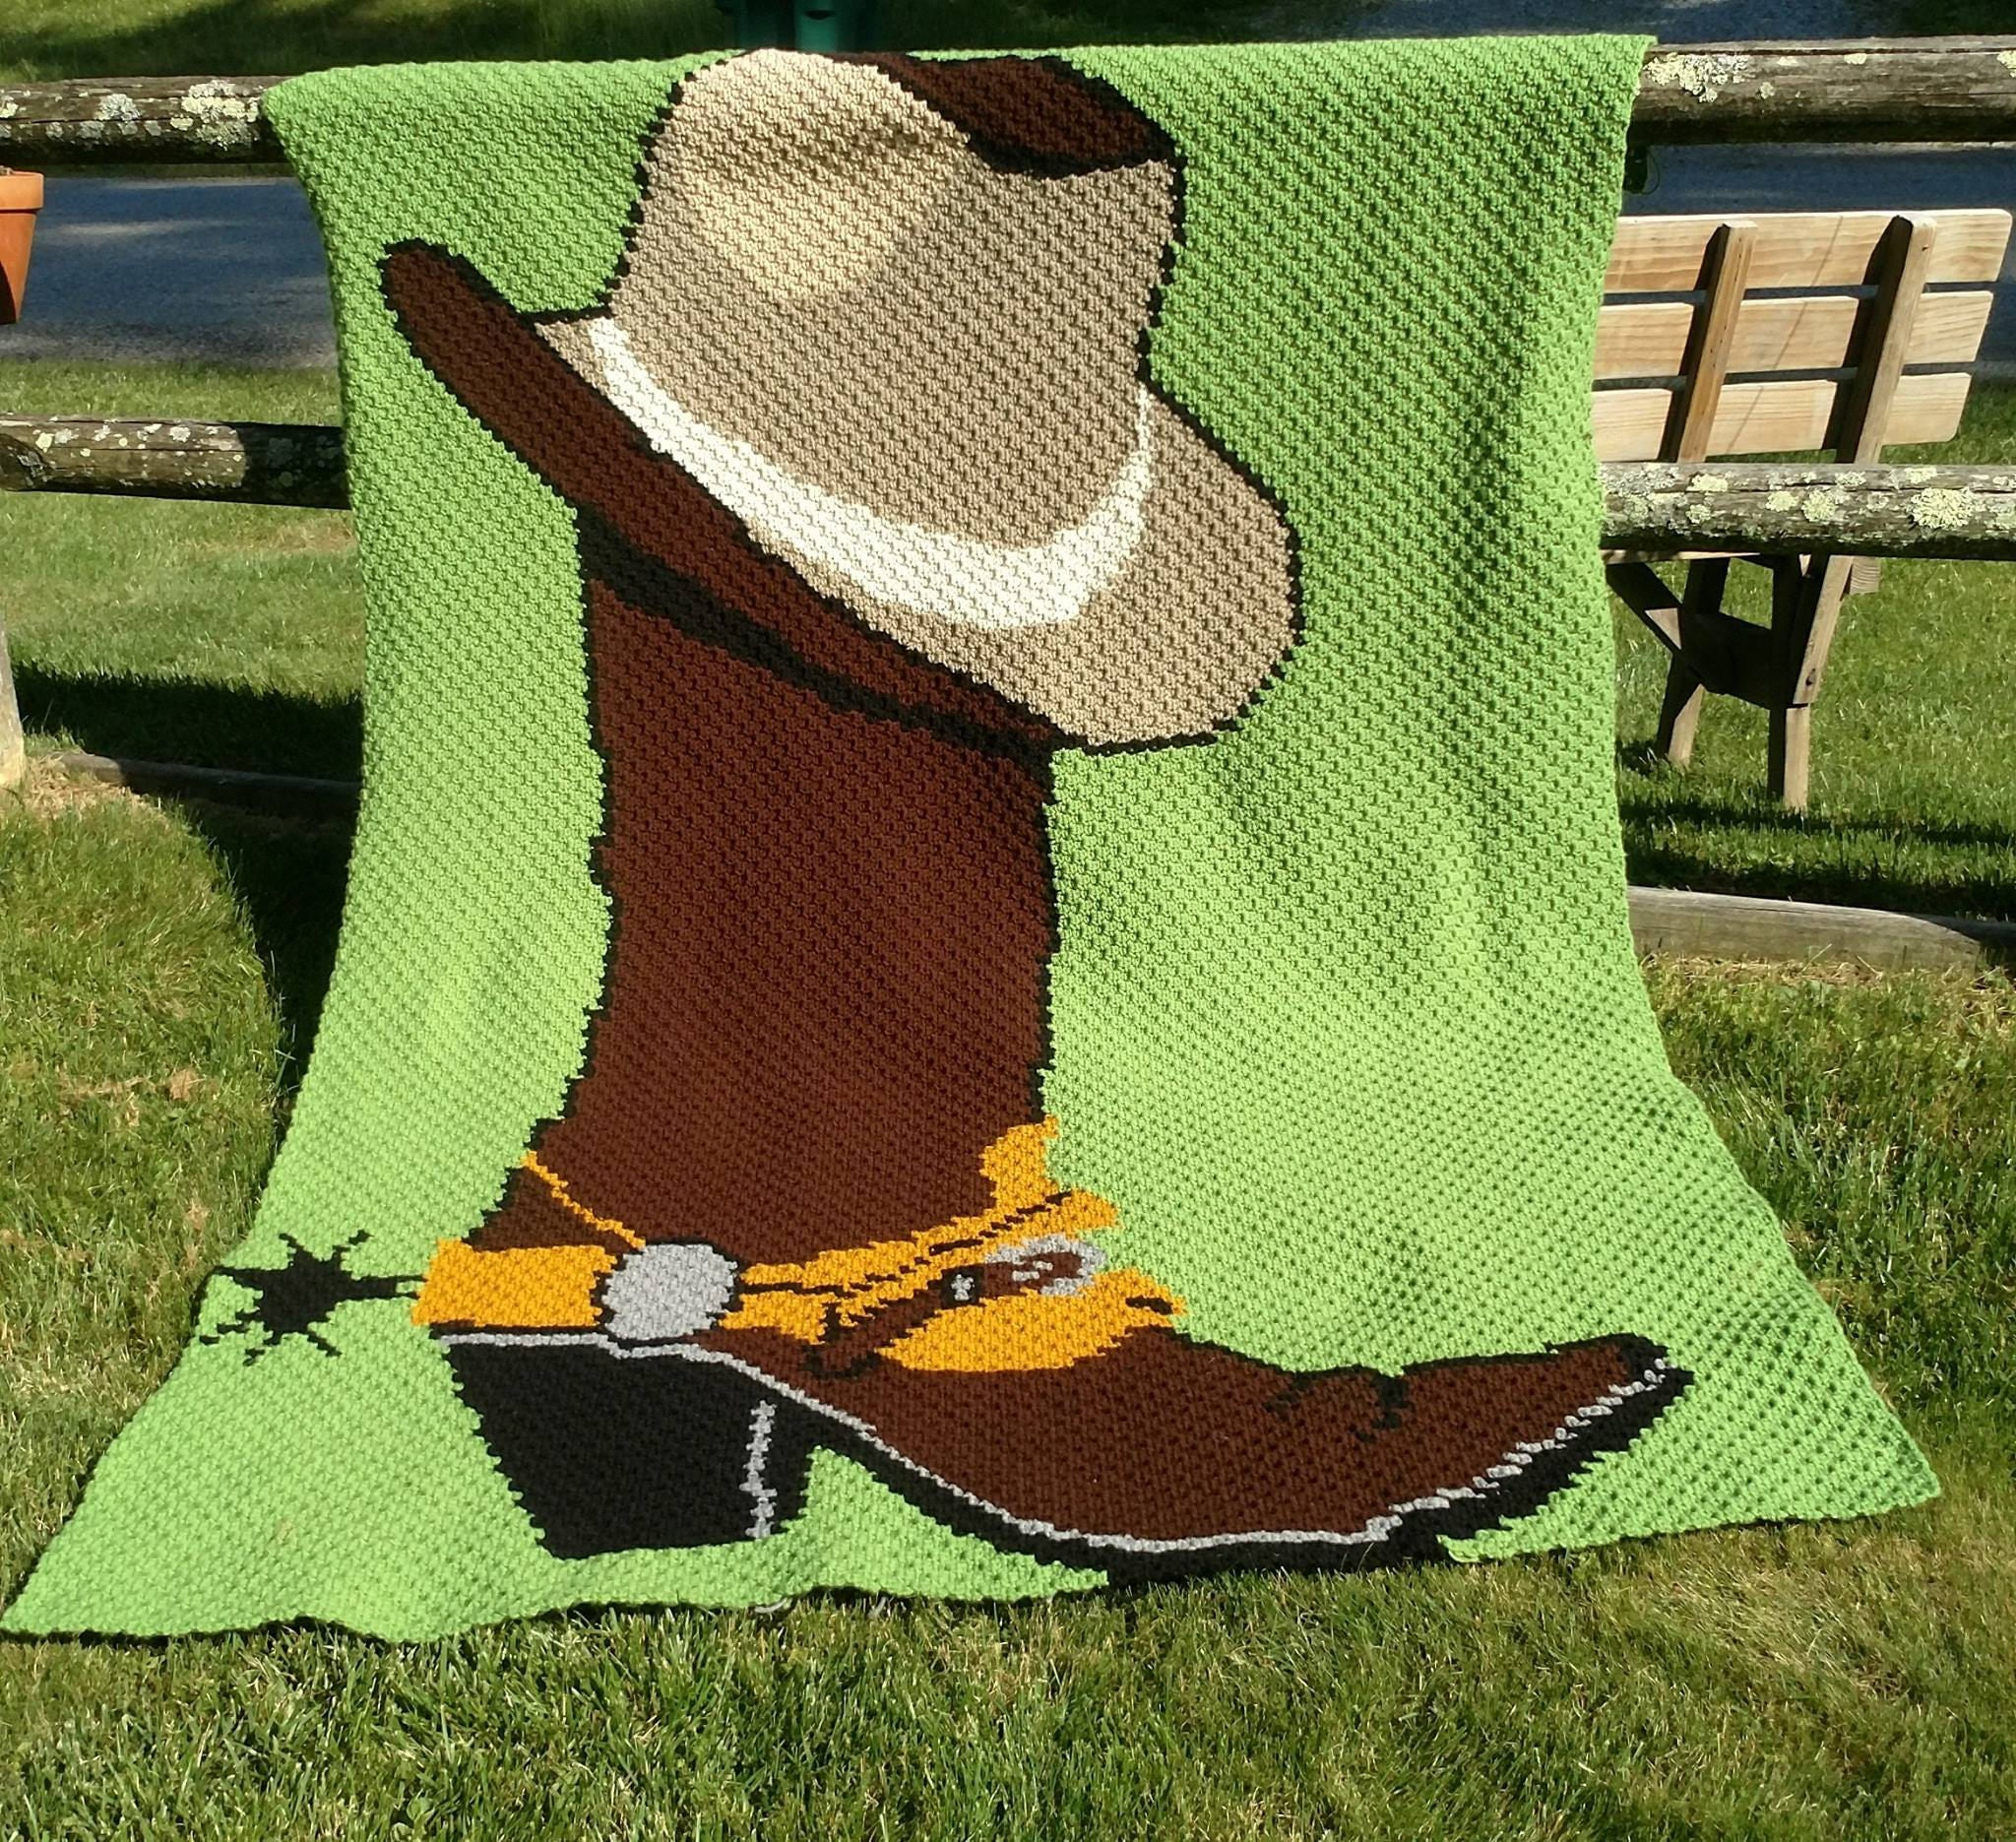 Mini C2c Pattern: Boot And Hat C2C Graph And Pattern. Mini C2c Cowboy Boot